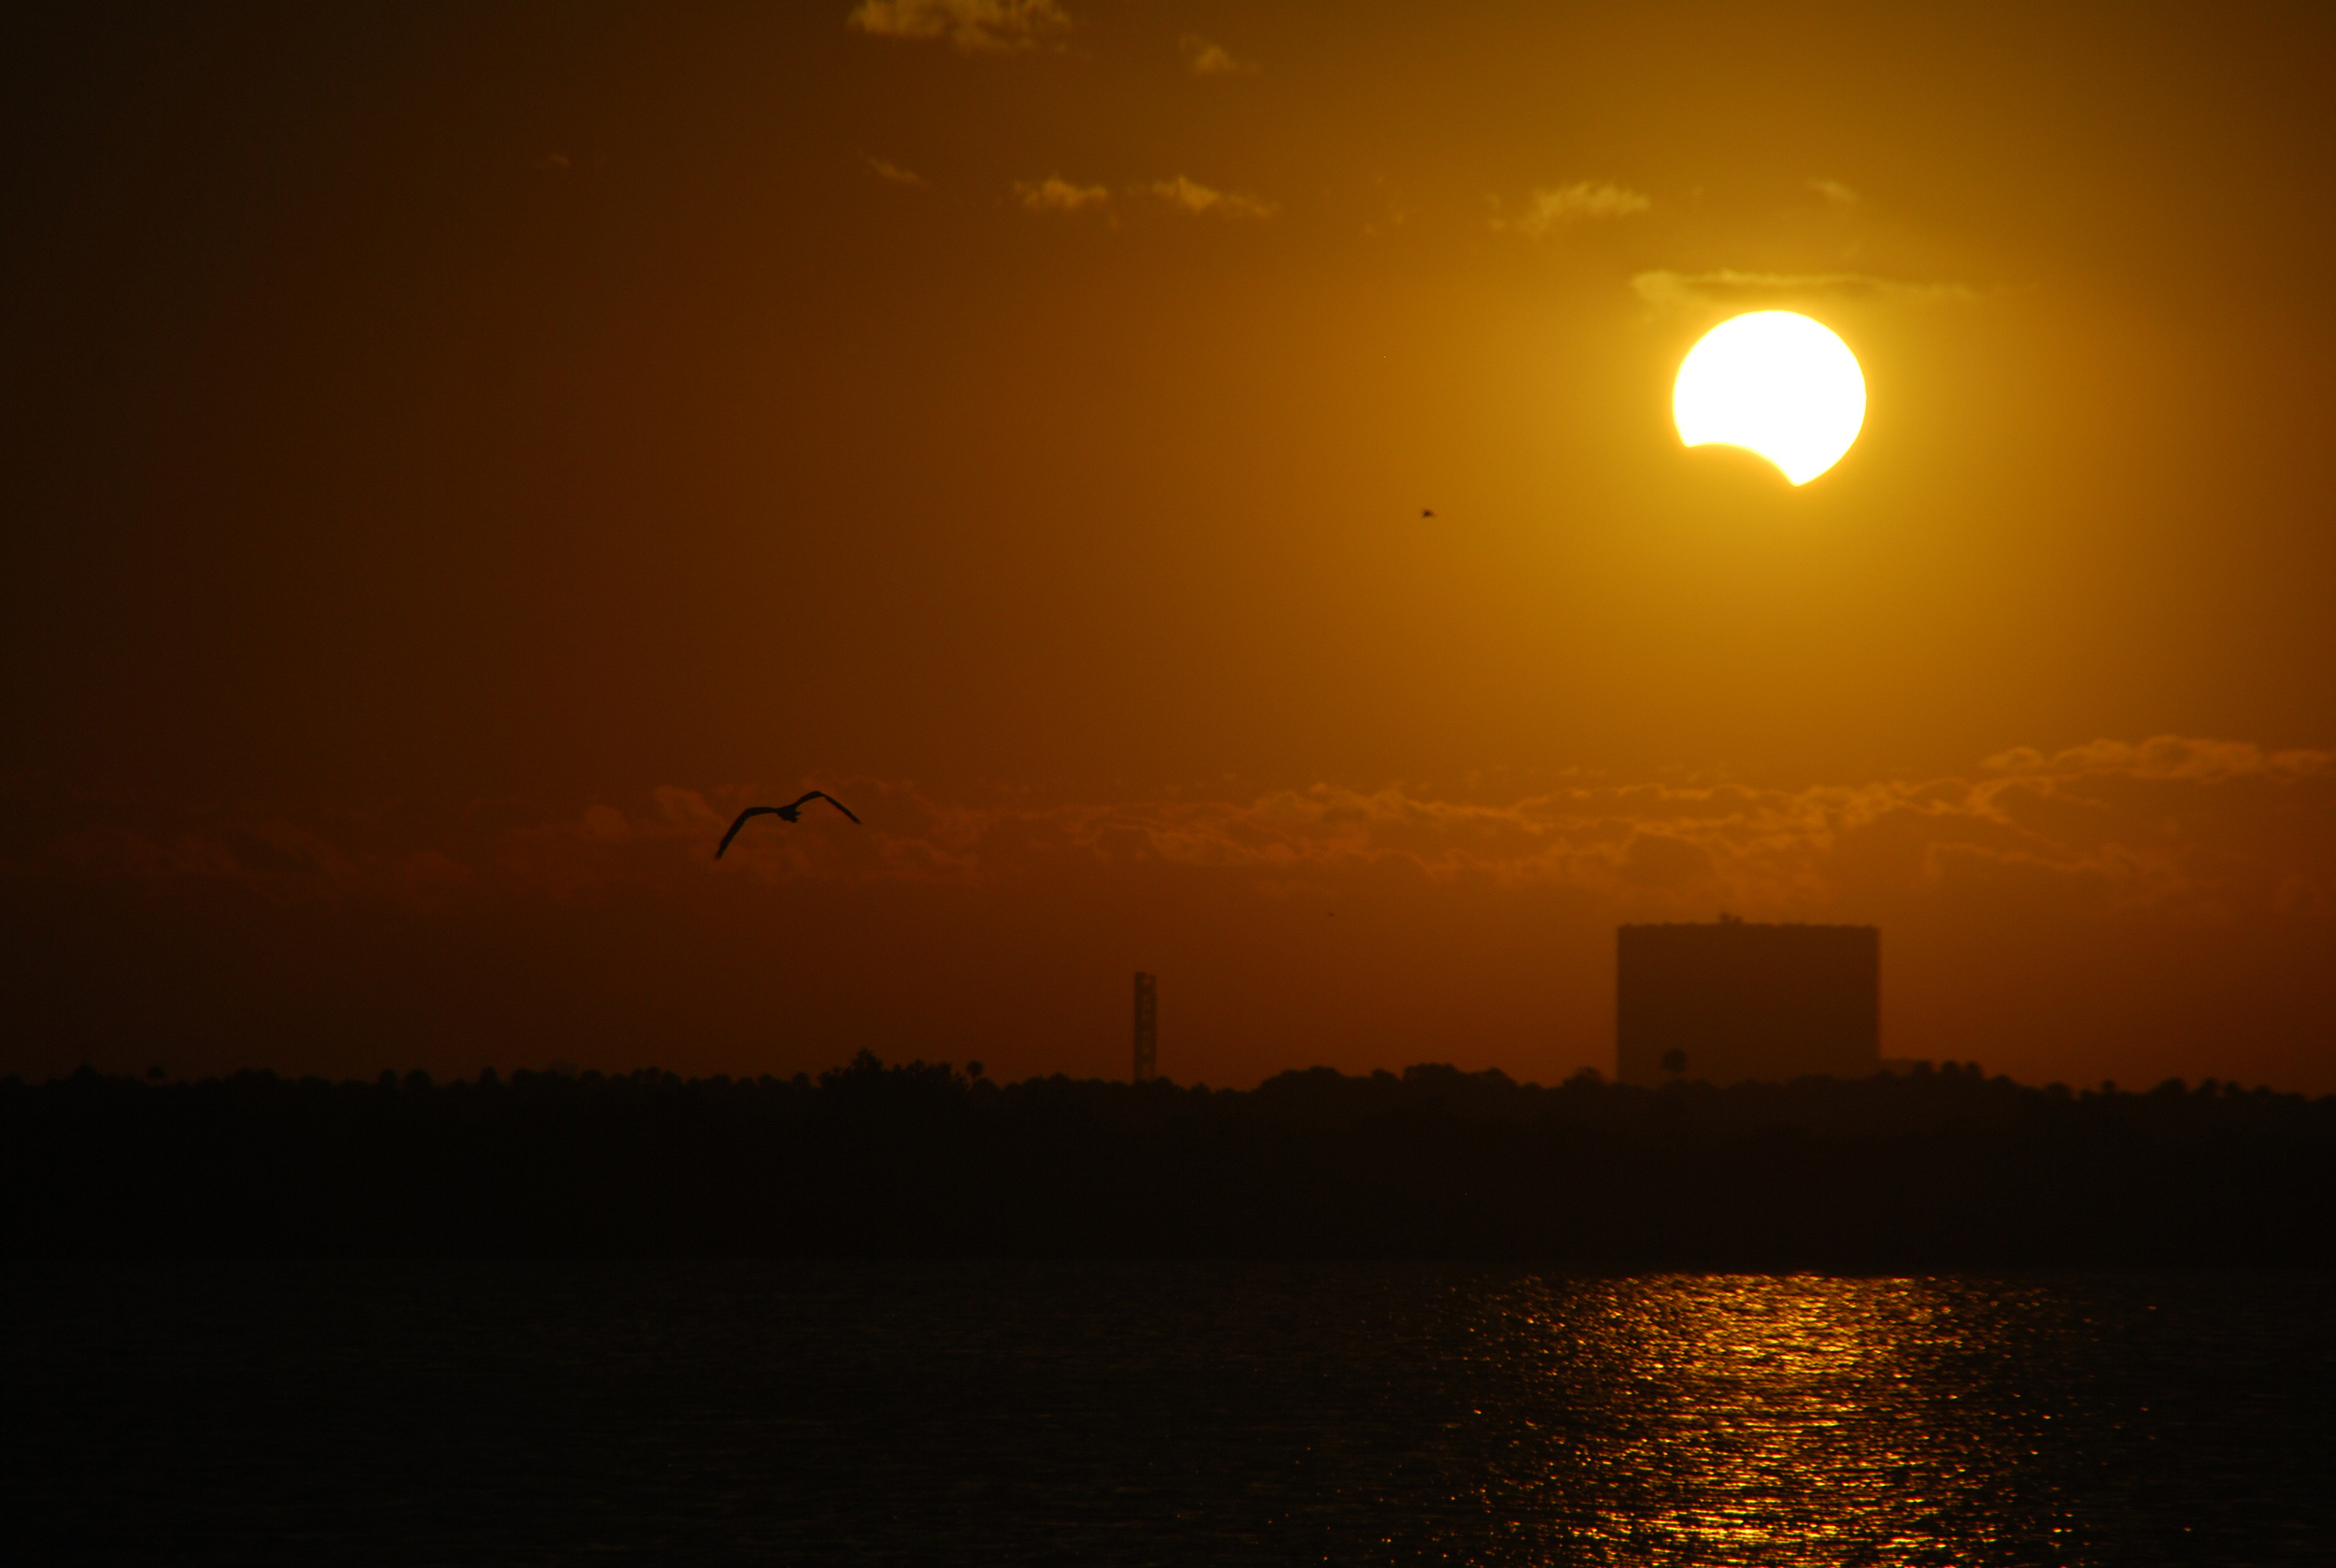 Partial eclipse over the Vehicle Assembly Building at the Kennedy Space Center. Copyright David Dickinson, November 3, 2013